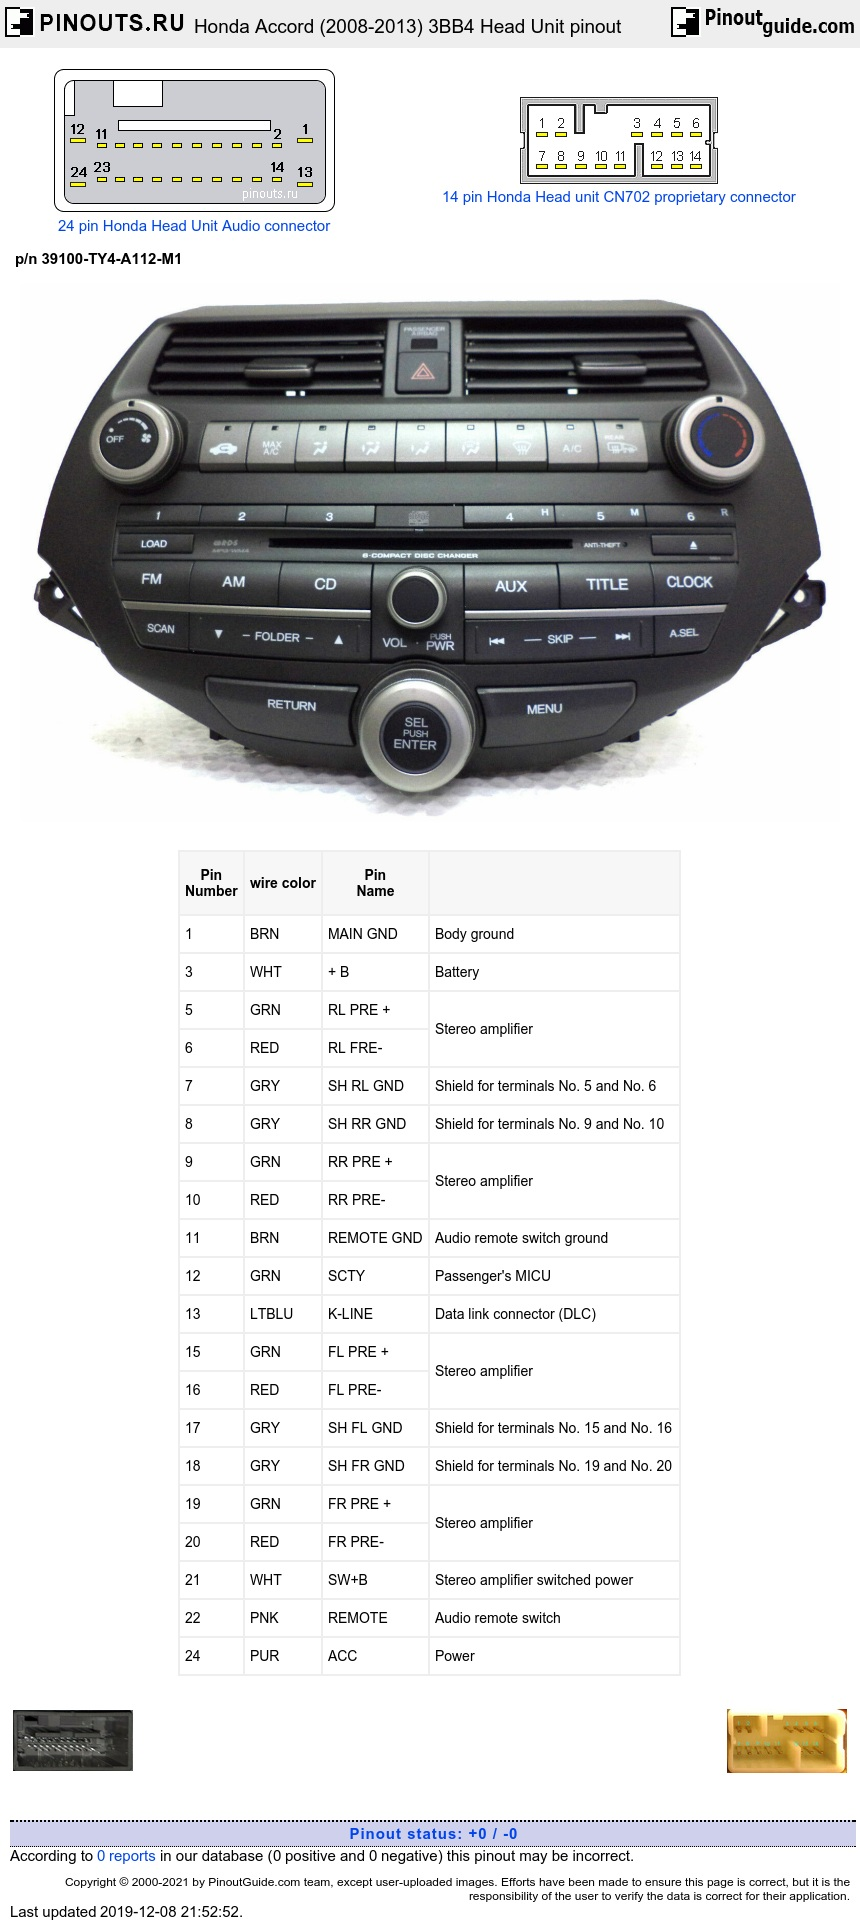 Honda Accord (2008-2013) 3BB4 Head Unit diagram